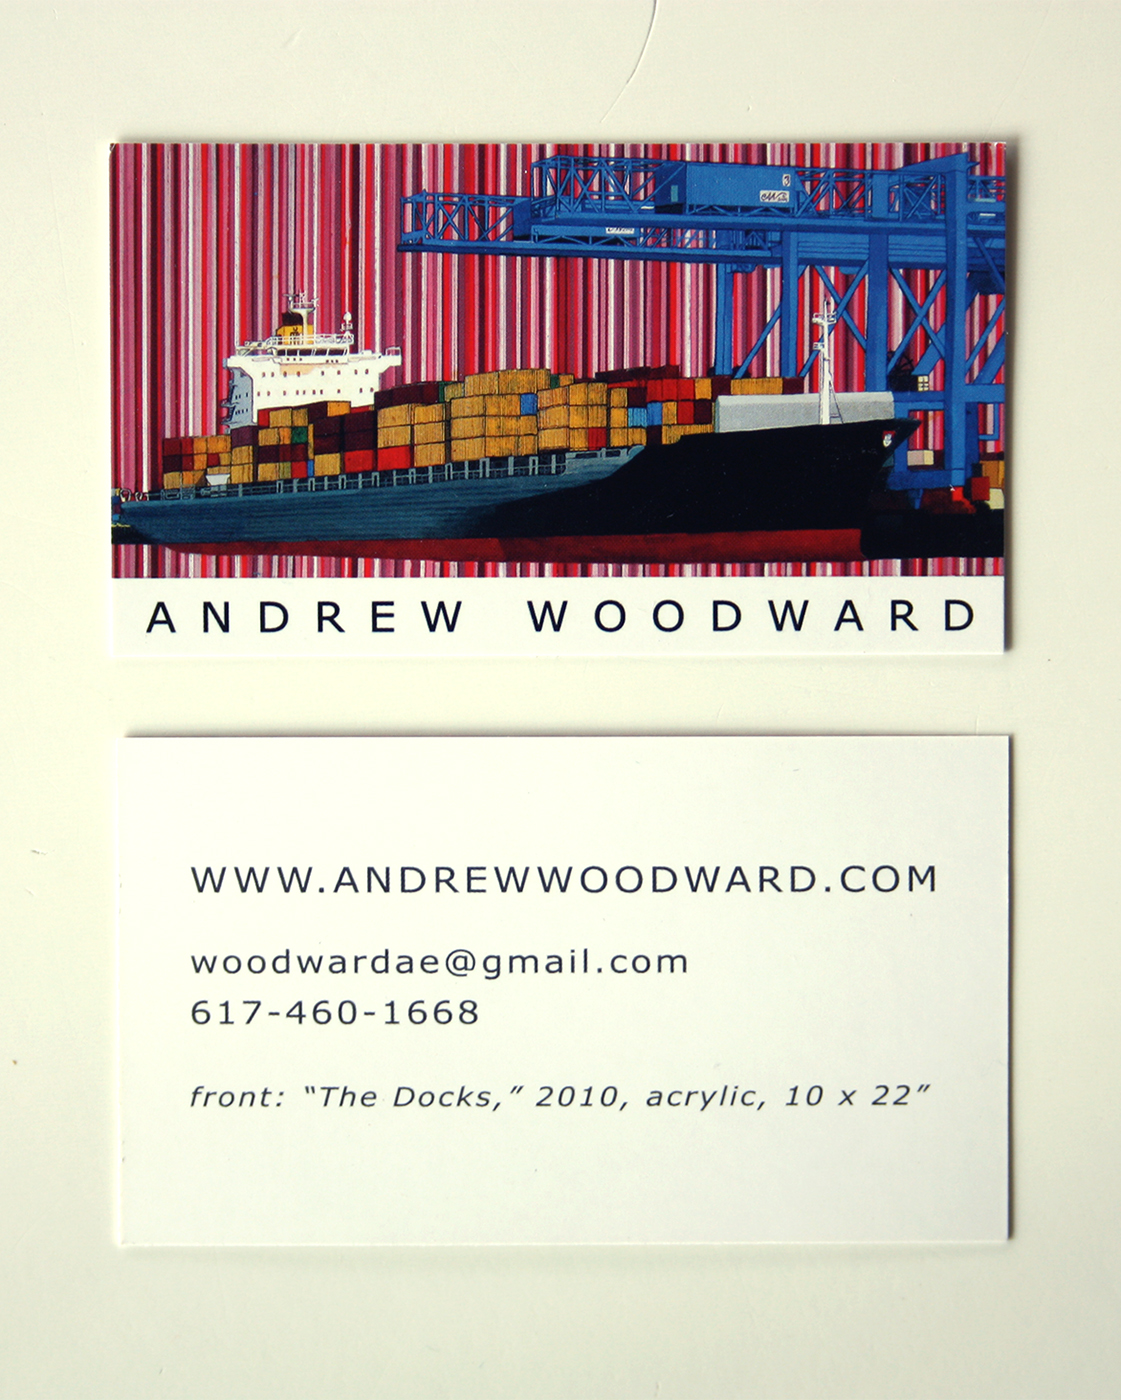 The Docks Business Card